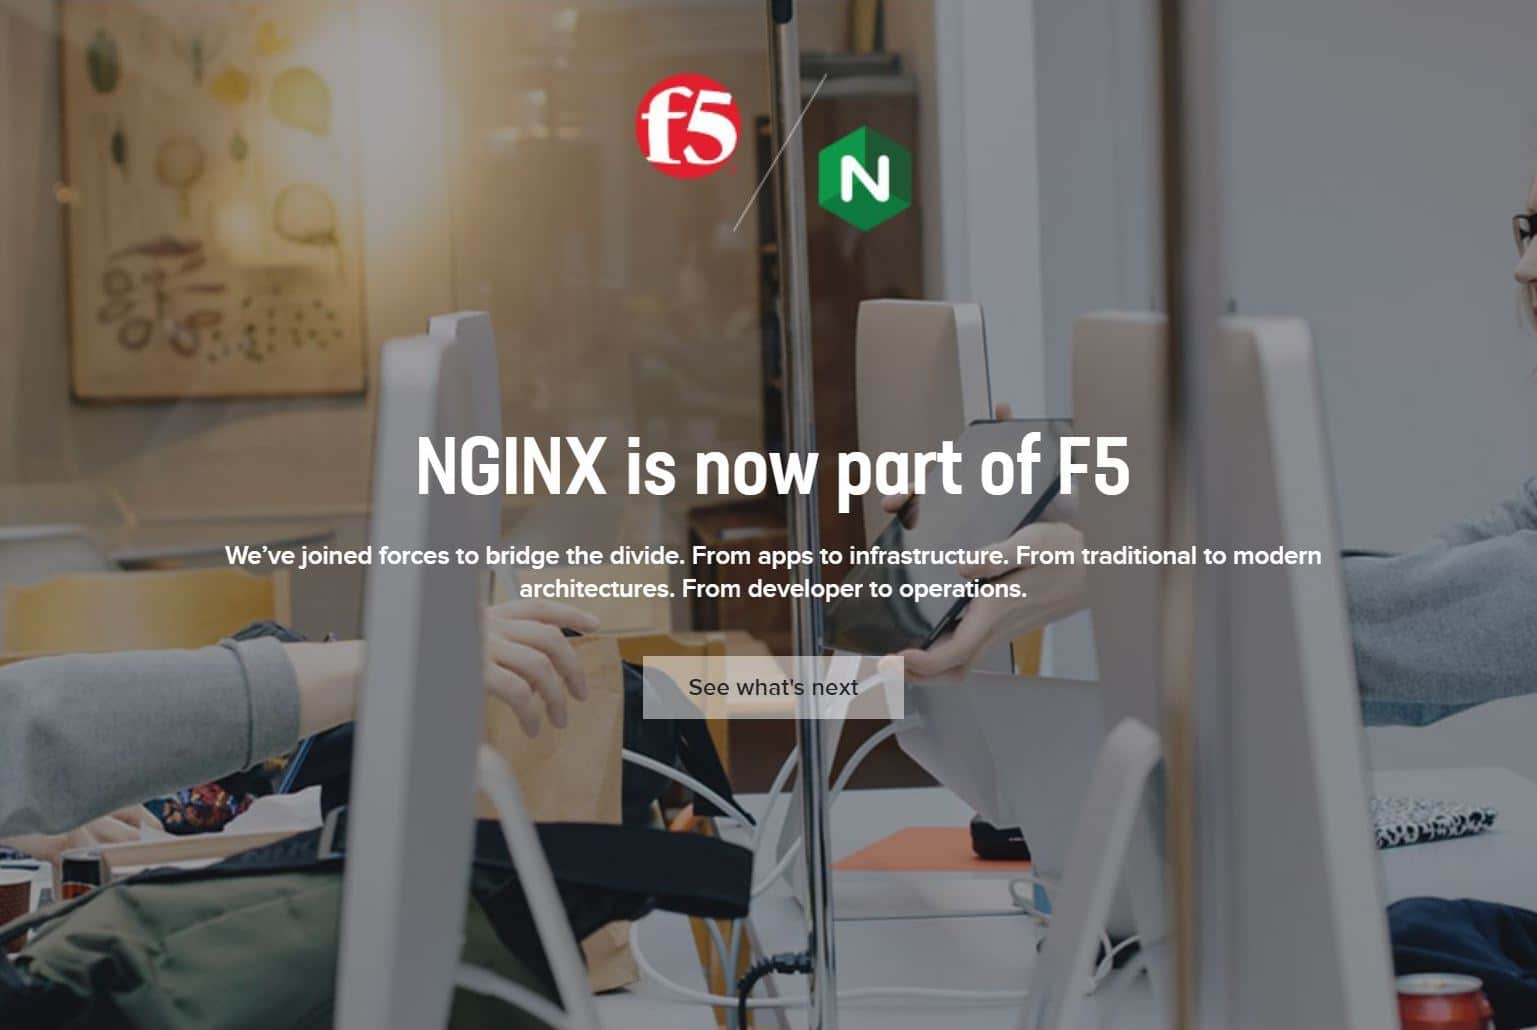 Acquisition de NGINX Inc. par F5 Networks